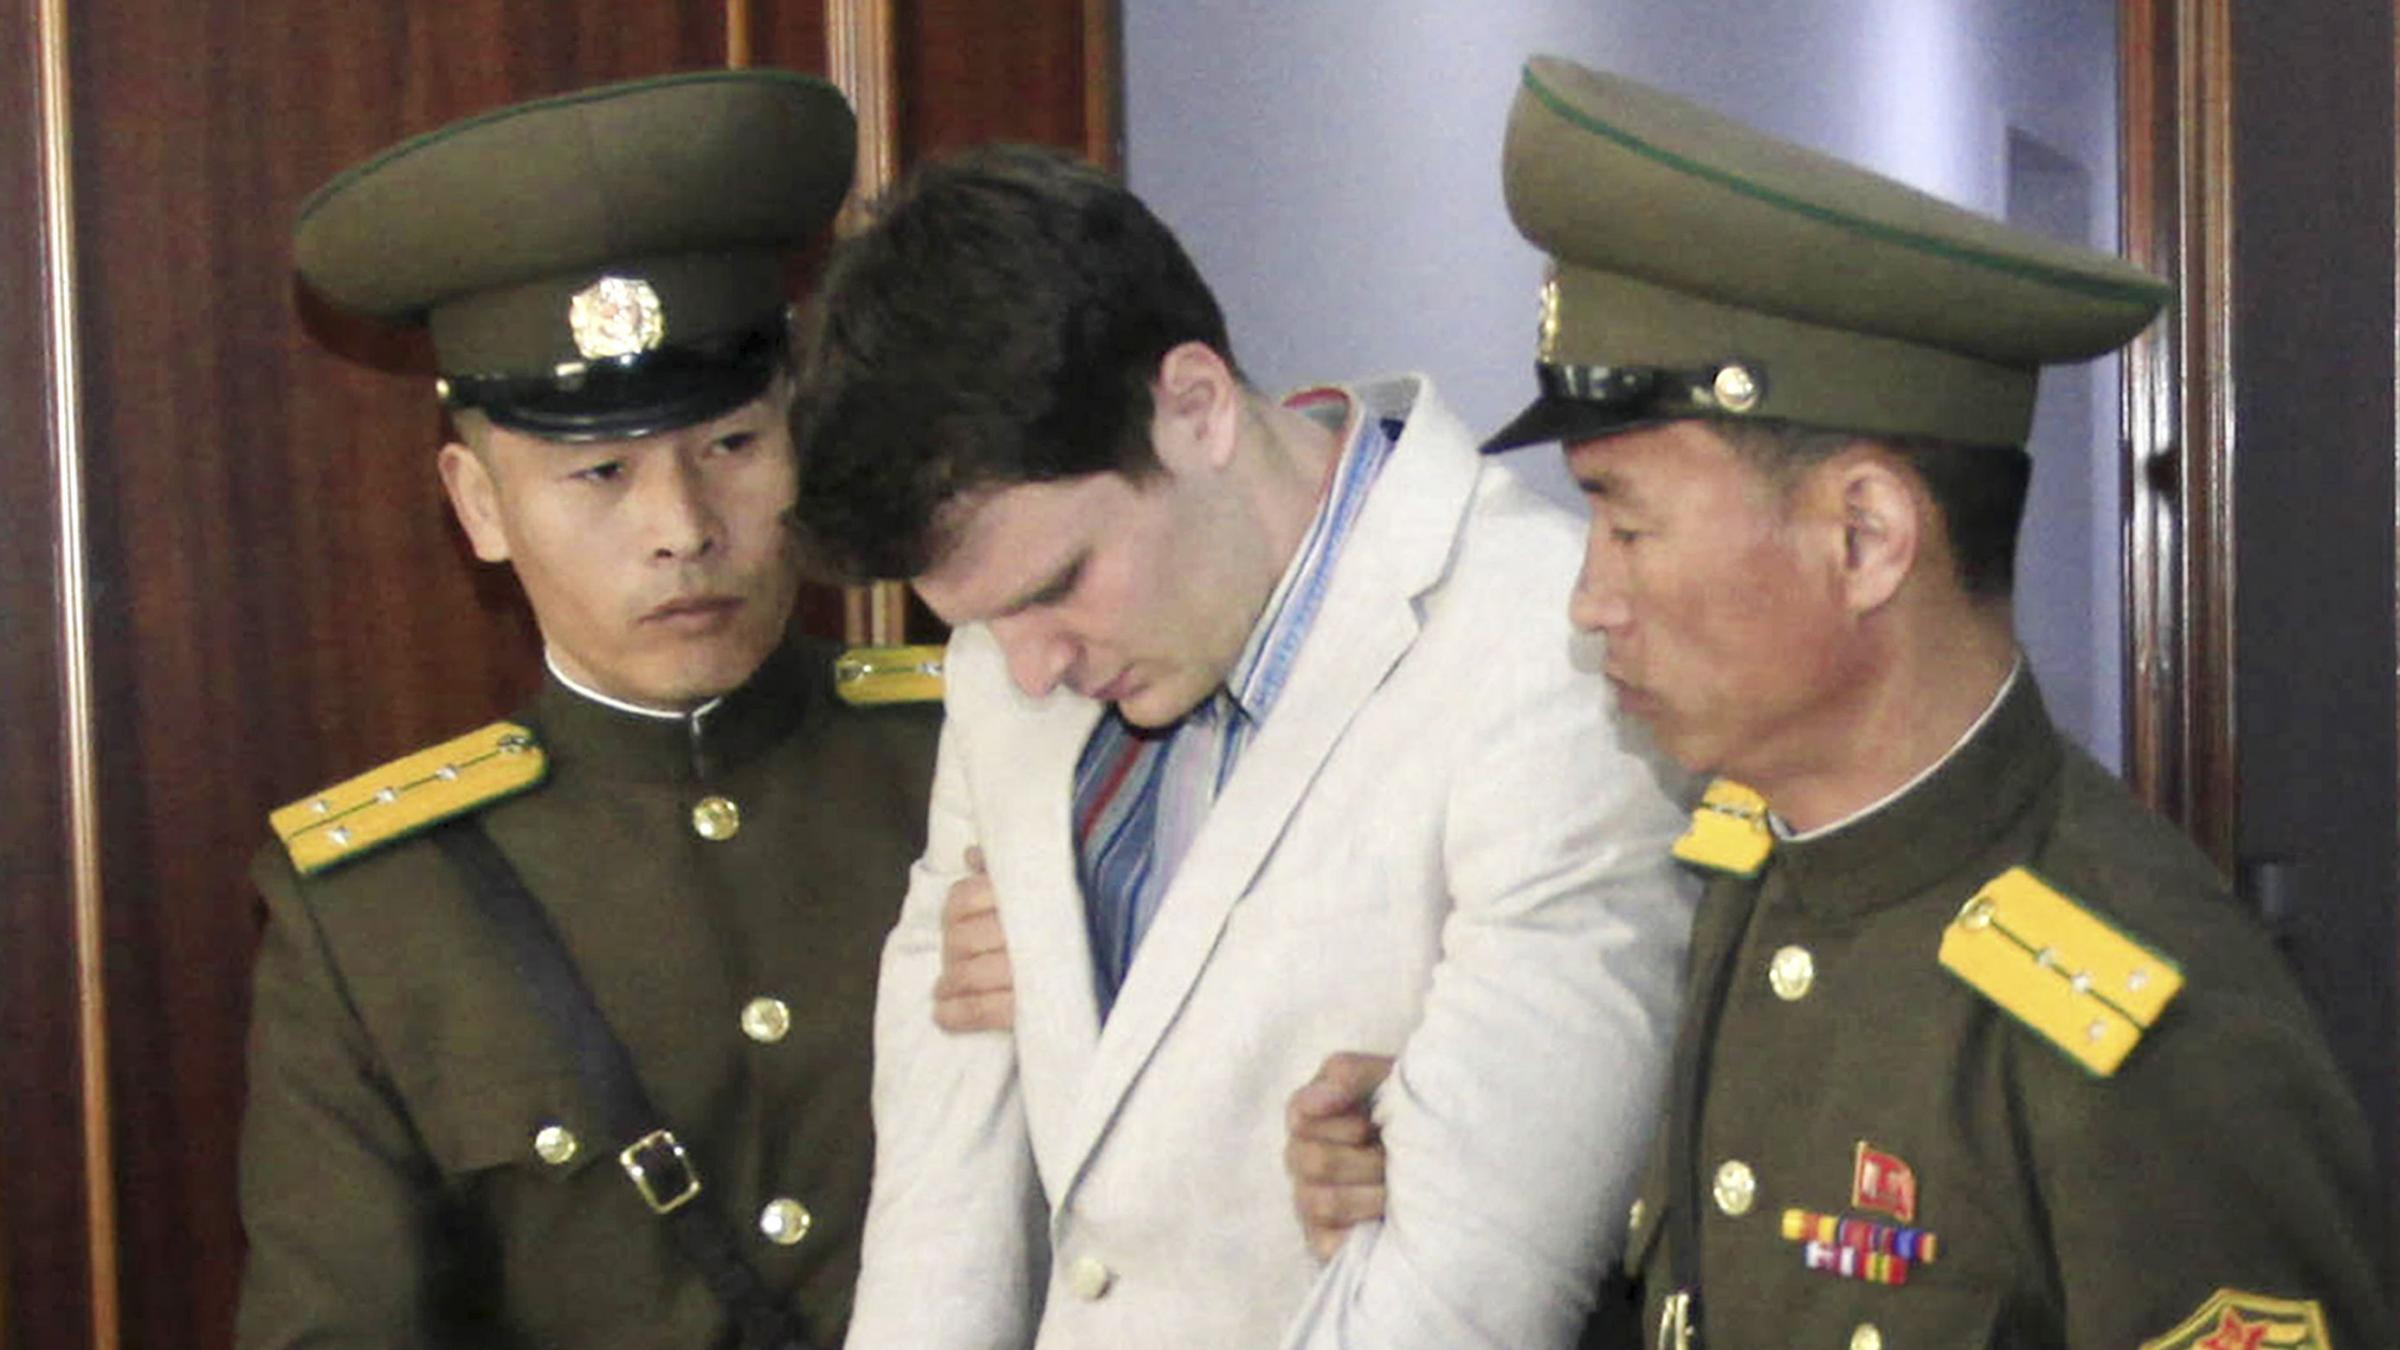 US official's 'quiet diplomacy' led to Warmbier's release